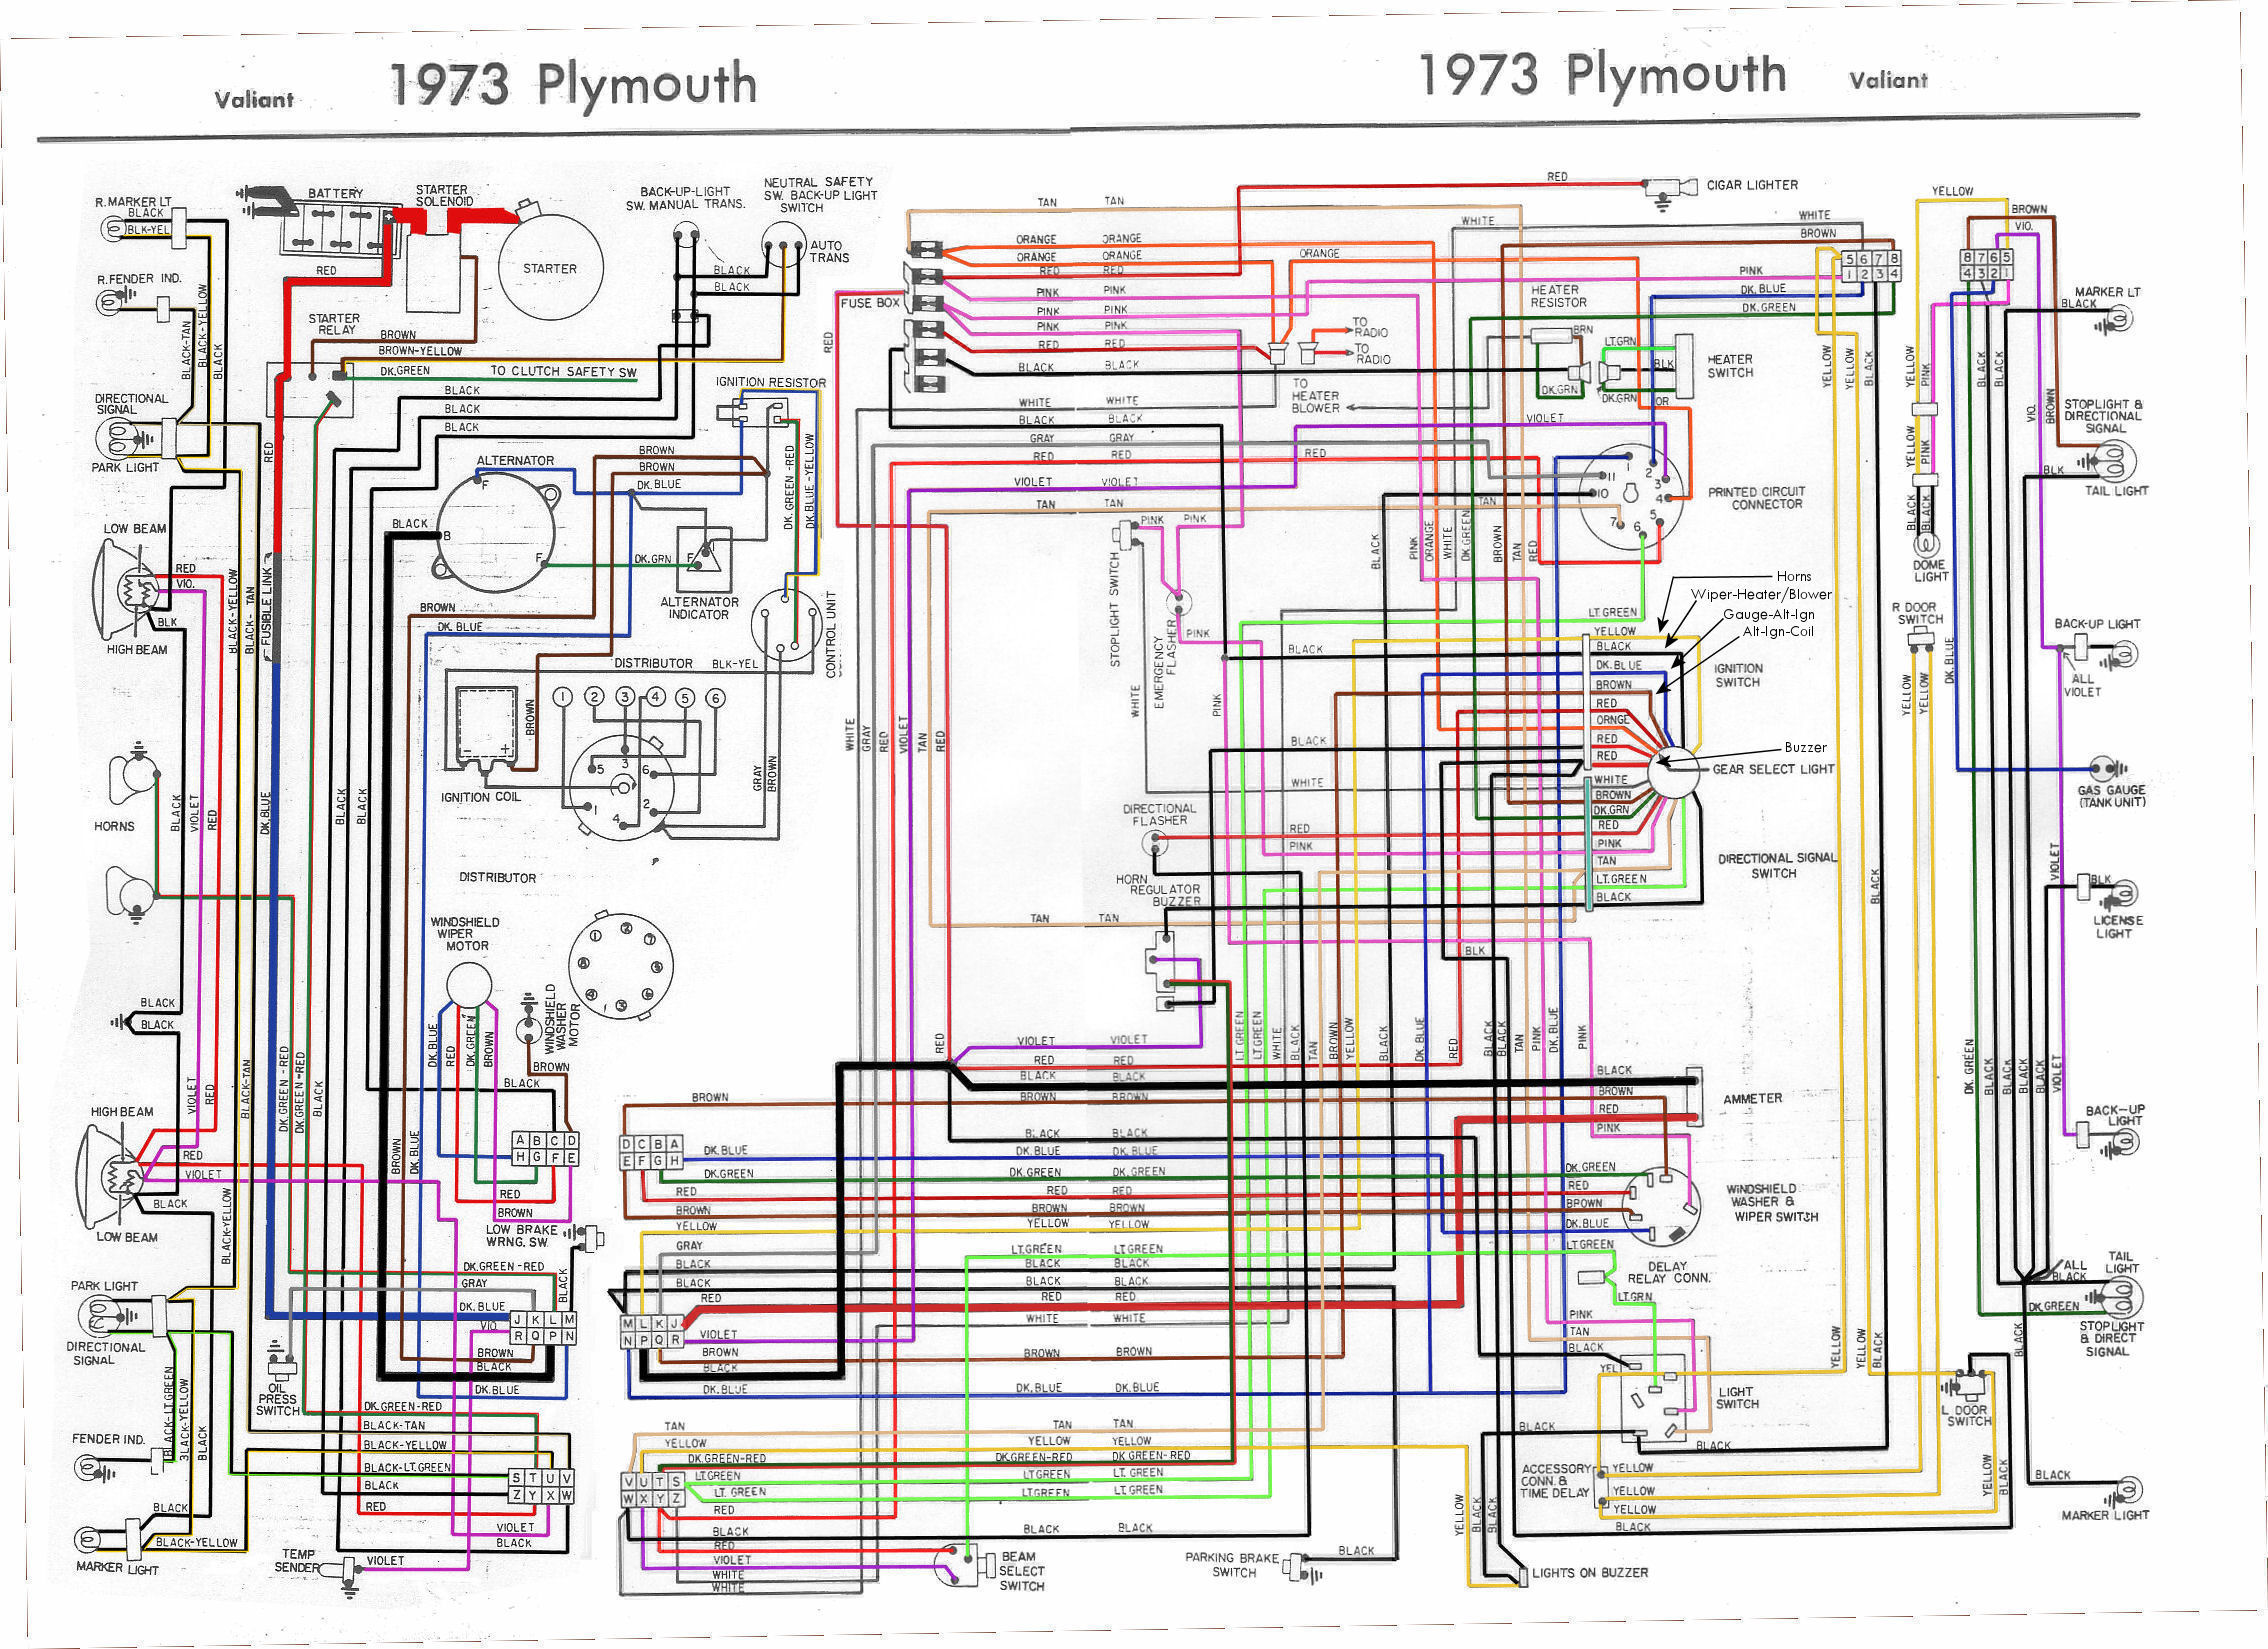 1969 Plymouth Barracuda Wiring Diagram 38 Images Diagrams Of 1961 6 Valiant 6493035 Wiringdiagramfullvaliantdusterquality80stripall 1973 Plymoth 340